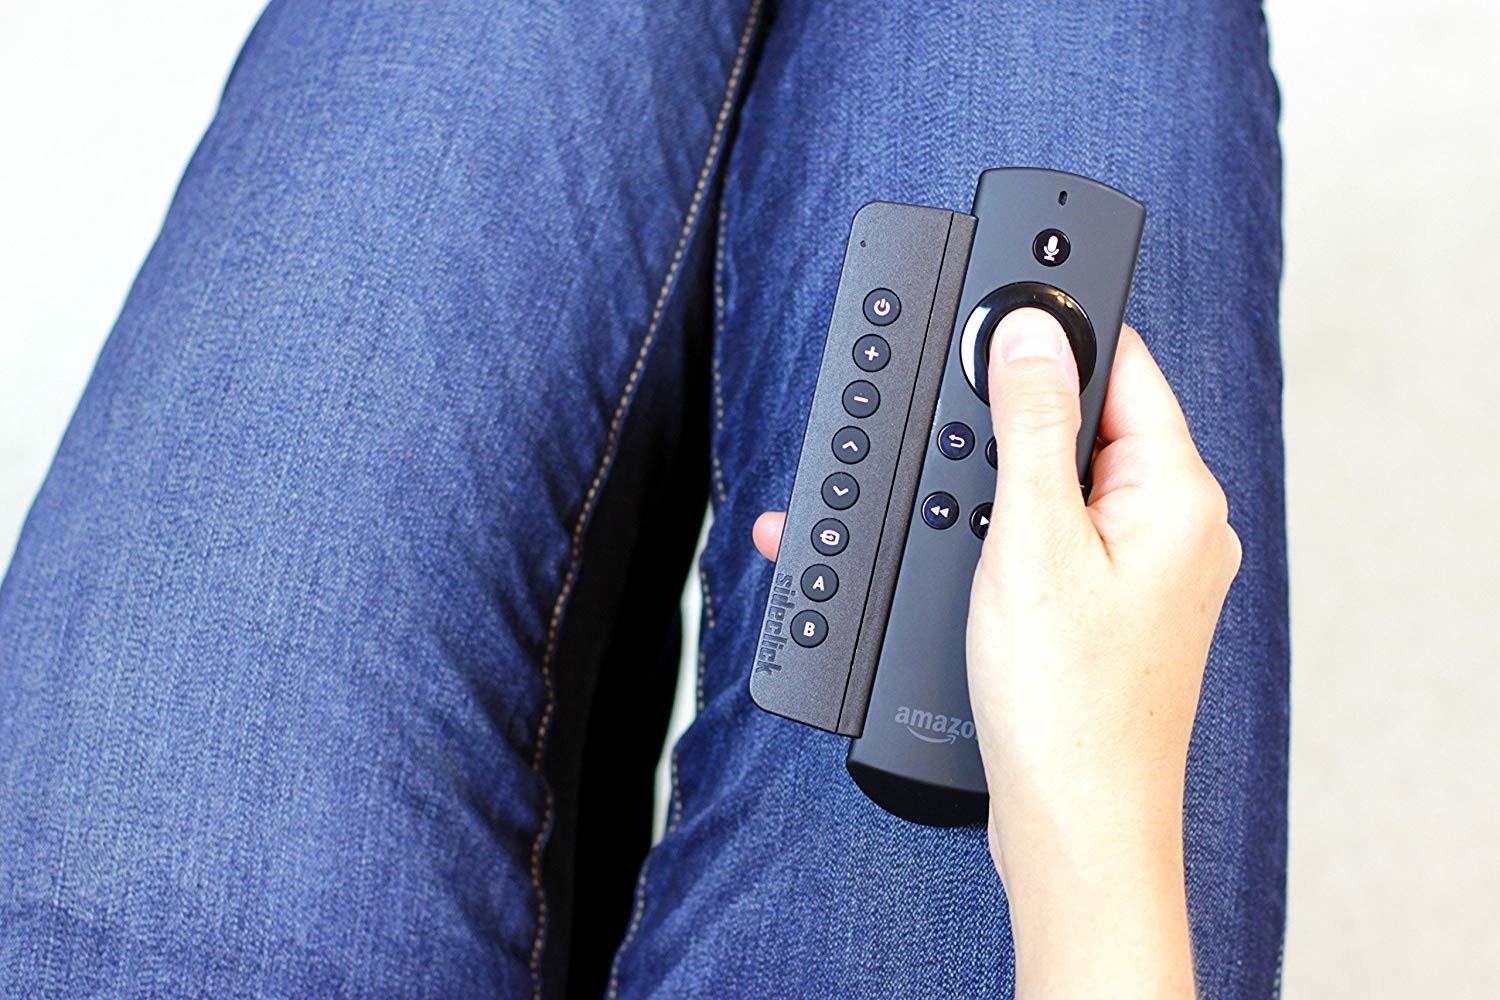 A person holding Fire TV Stick remote with the attachment